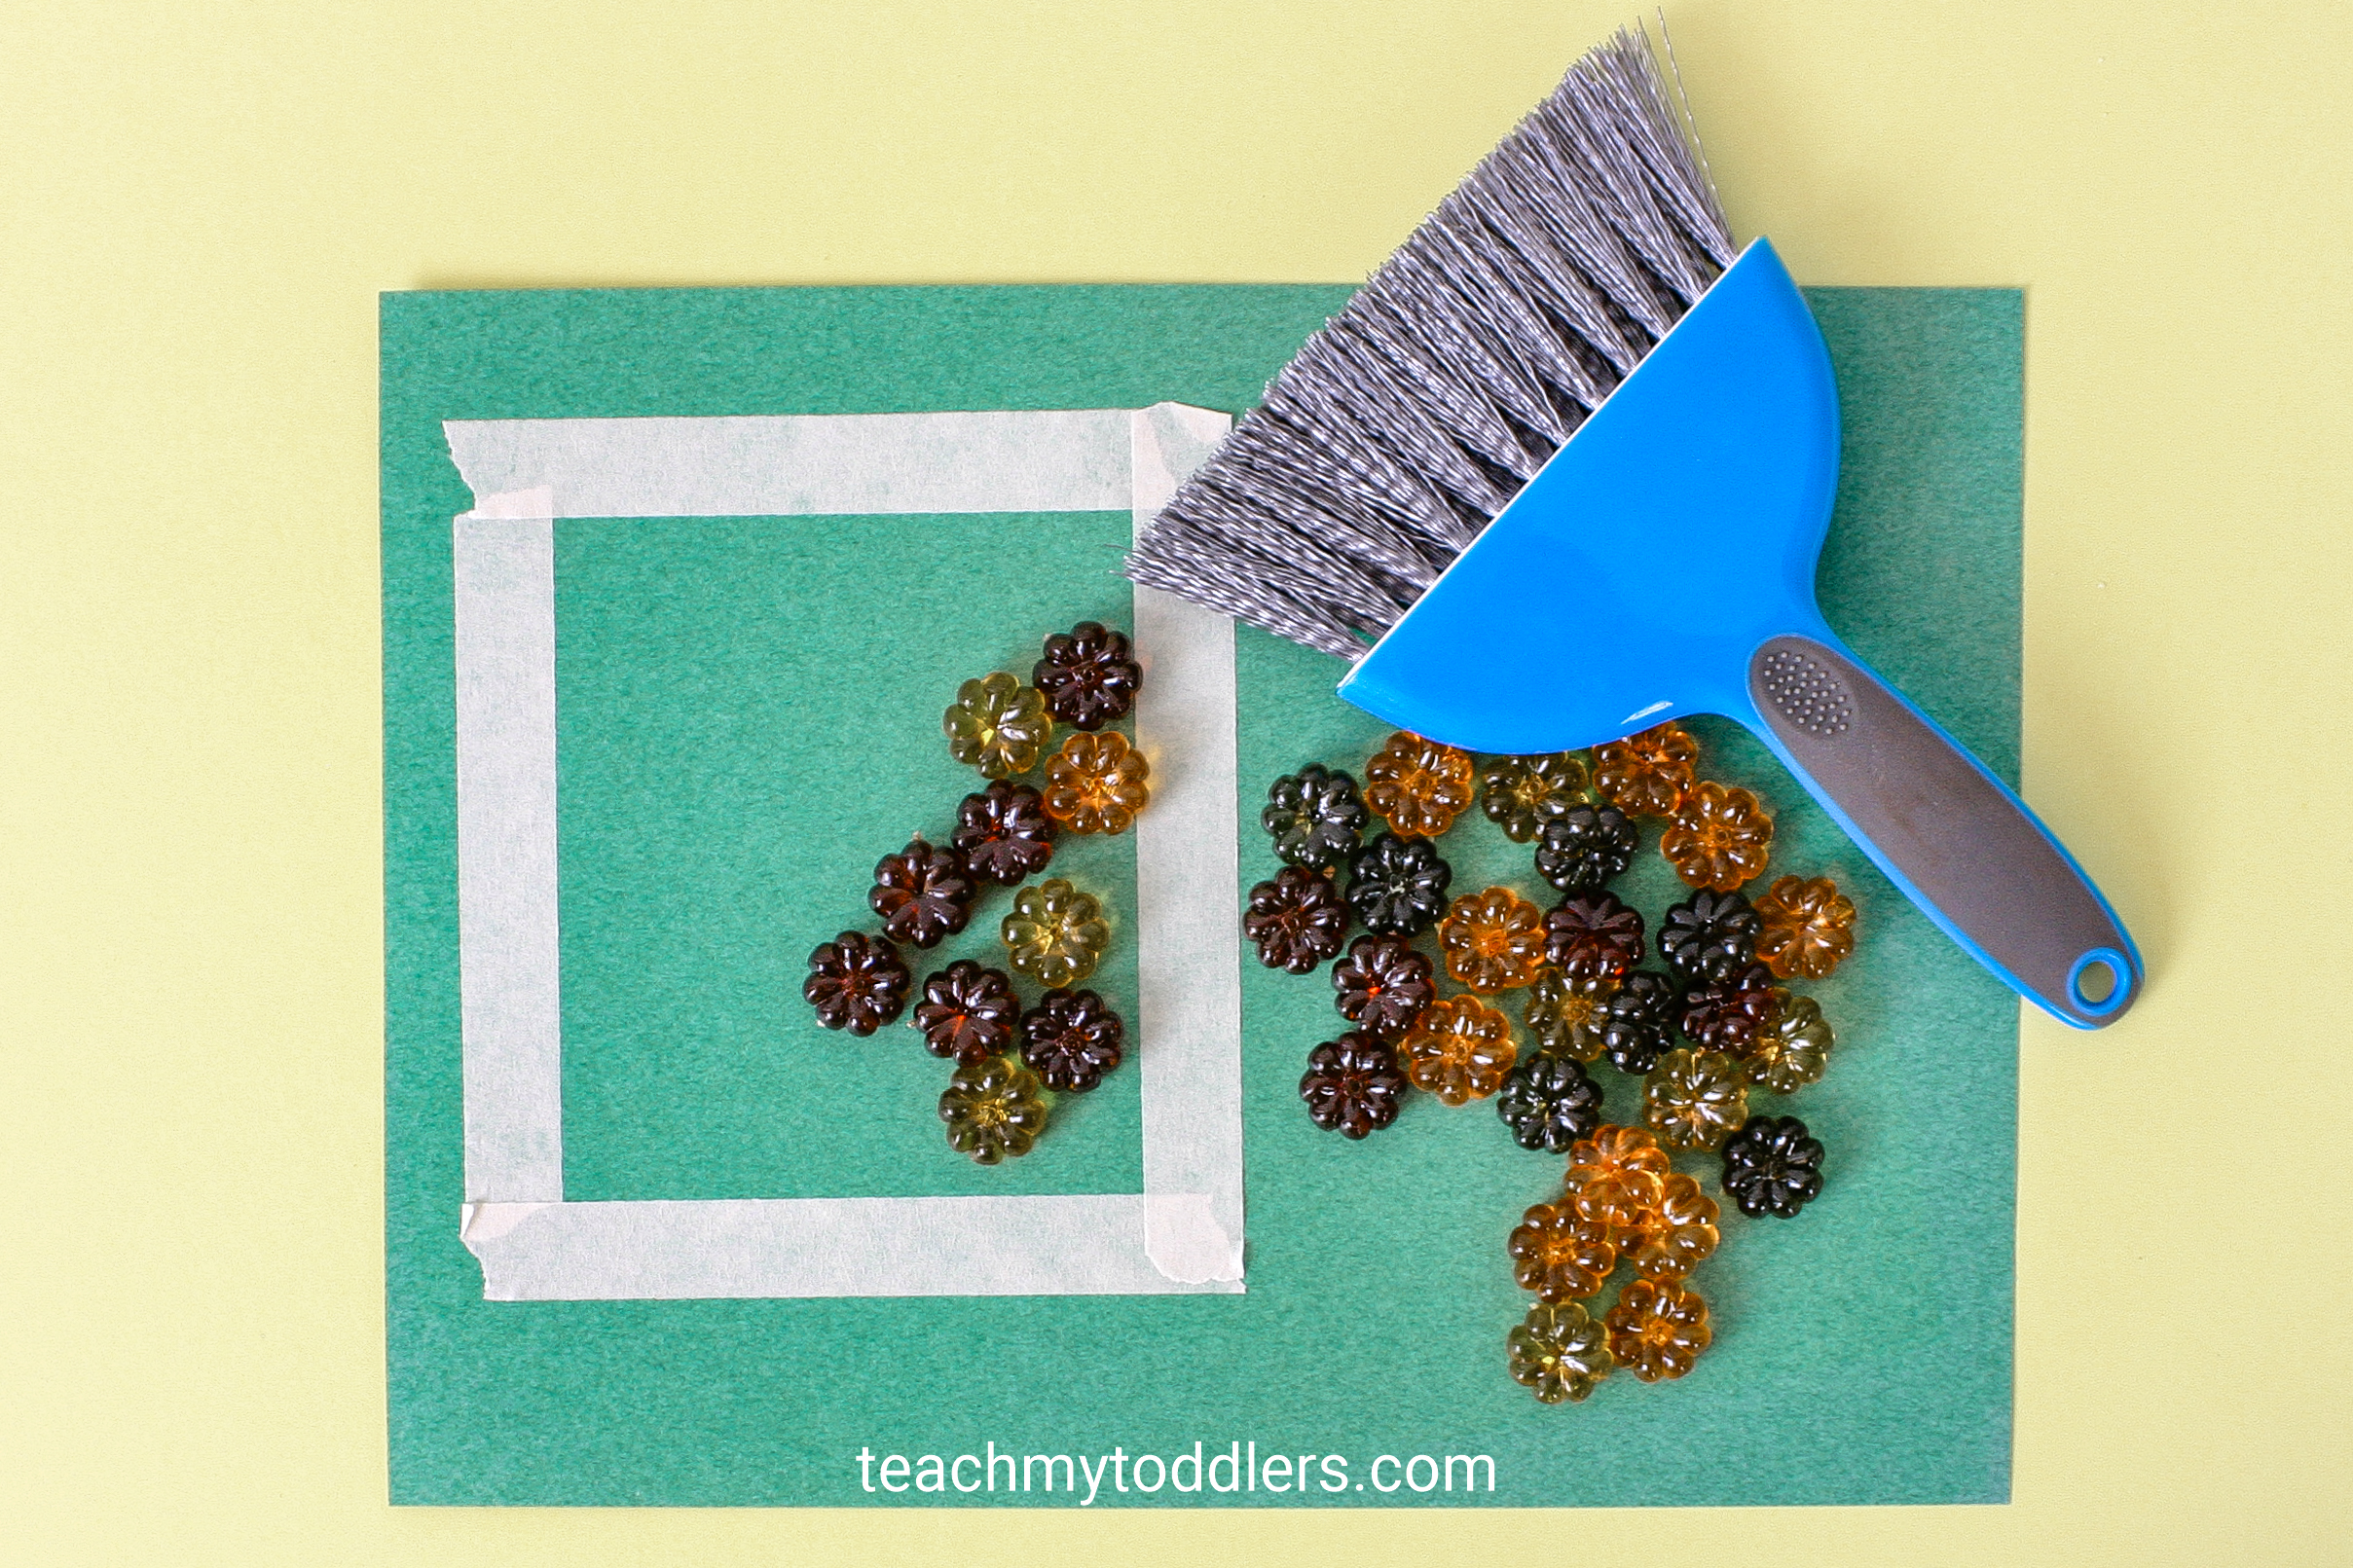 Learn how to use these awesome table scatter activities to teach your toddlers math